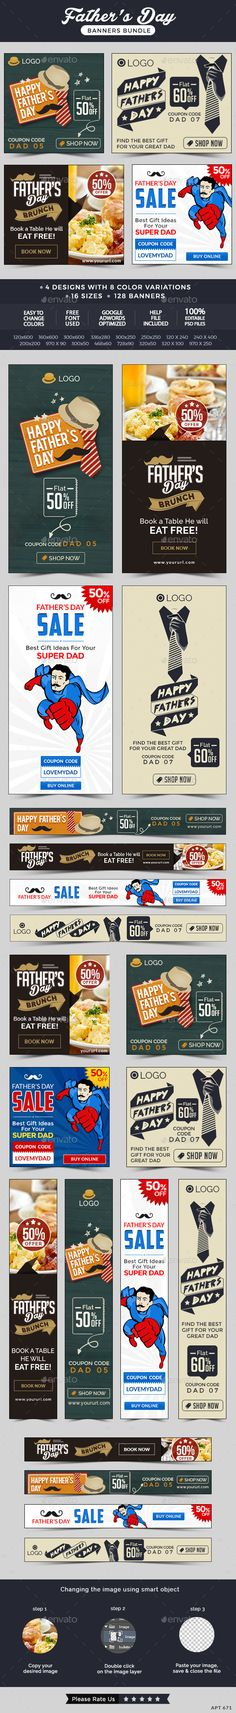 Father's Day Sale Banners Bundle - 128 Banners Template #design Download: http://graphicriver.net/item/fathers-day-sale-banners-bundle-128-banners/11717267?ref=ksioks